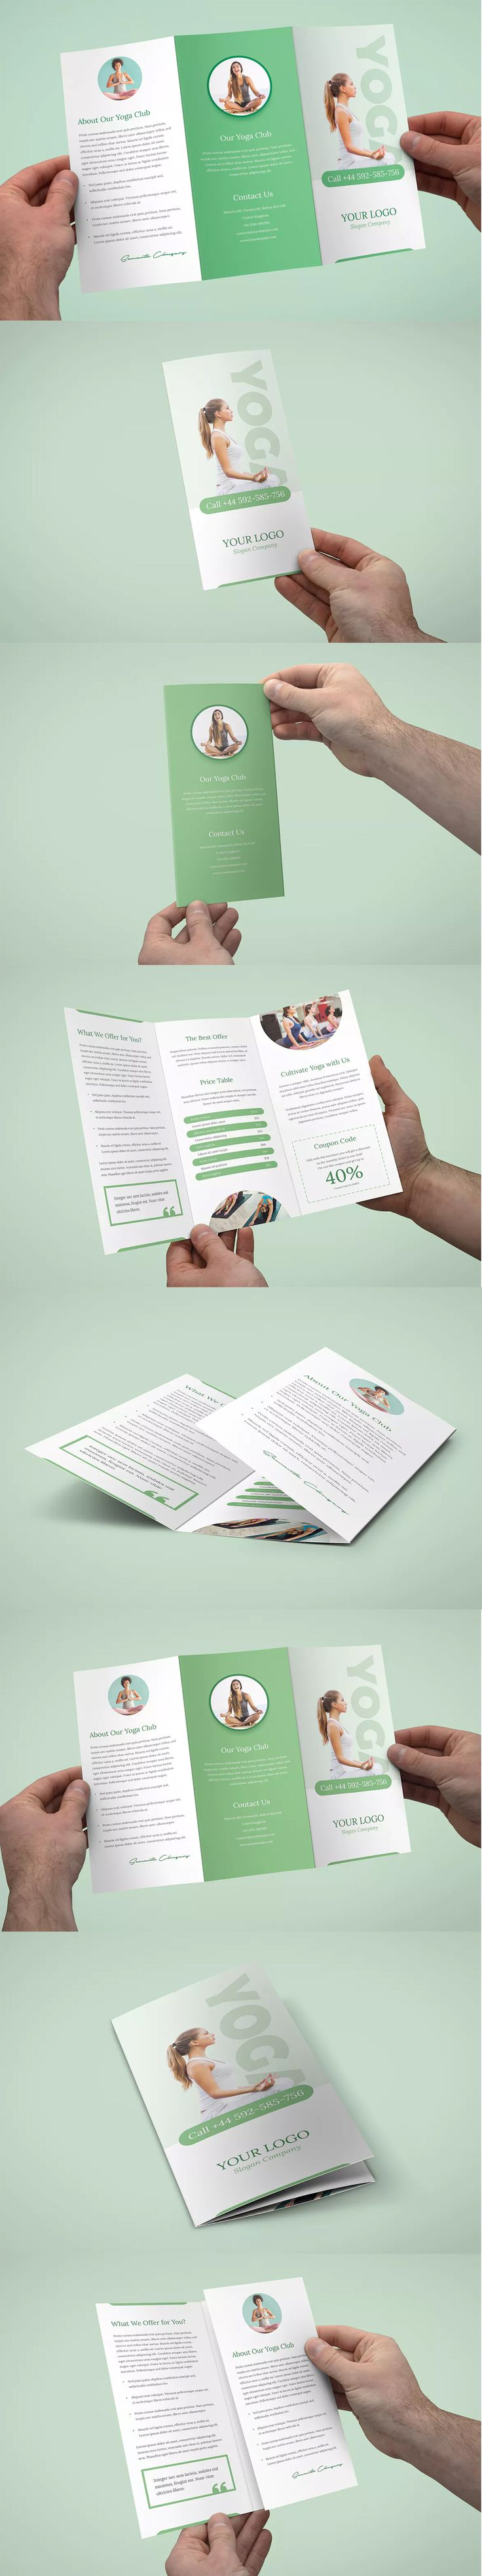 Yoga Tri-Fold Brochure Template PSD - A4 and US Letter Size